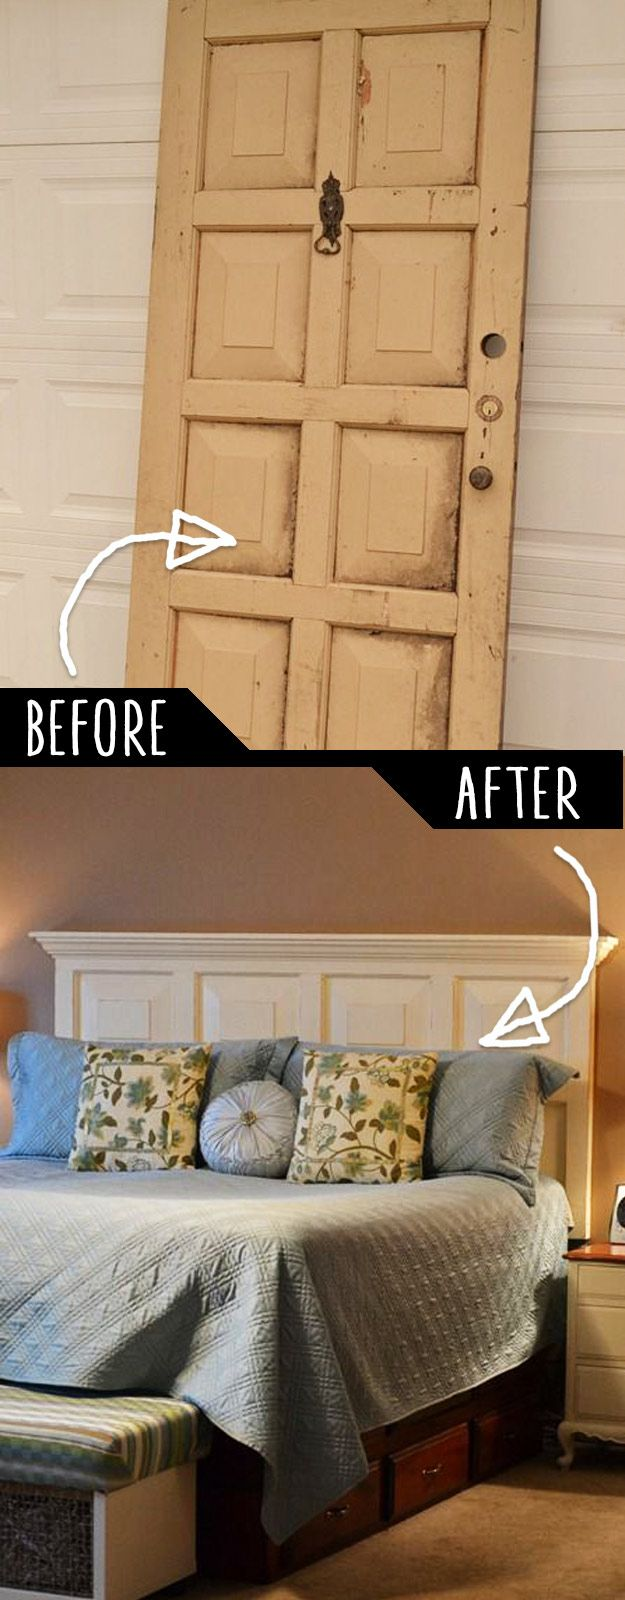 Cheap Headboard Ideas Part - 35: DIY Furniture Hacks | Door Headboard | Cool Ideas For Creative Do It  Yourself Furniture |